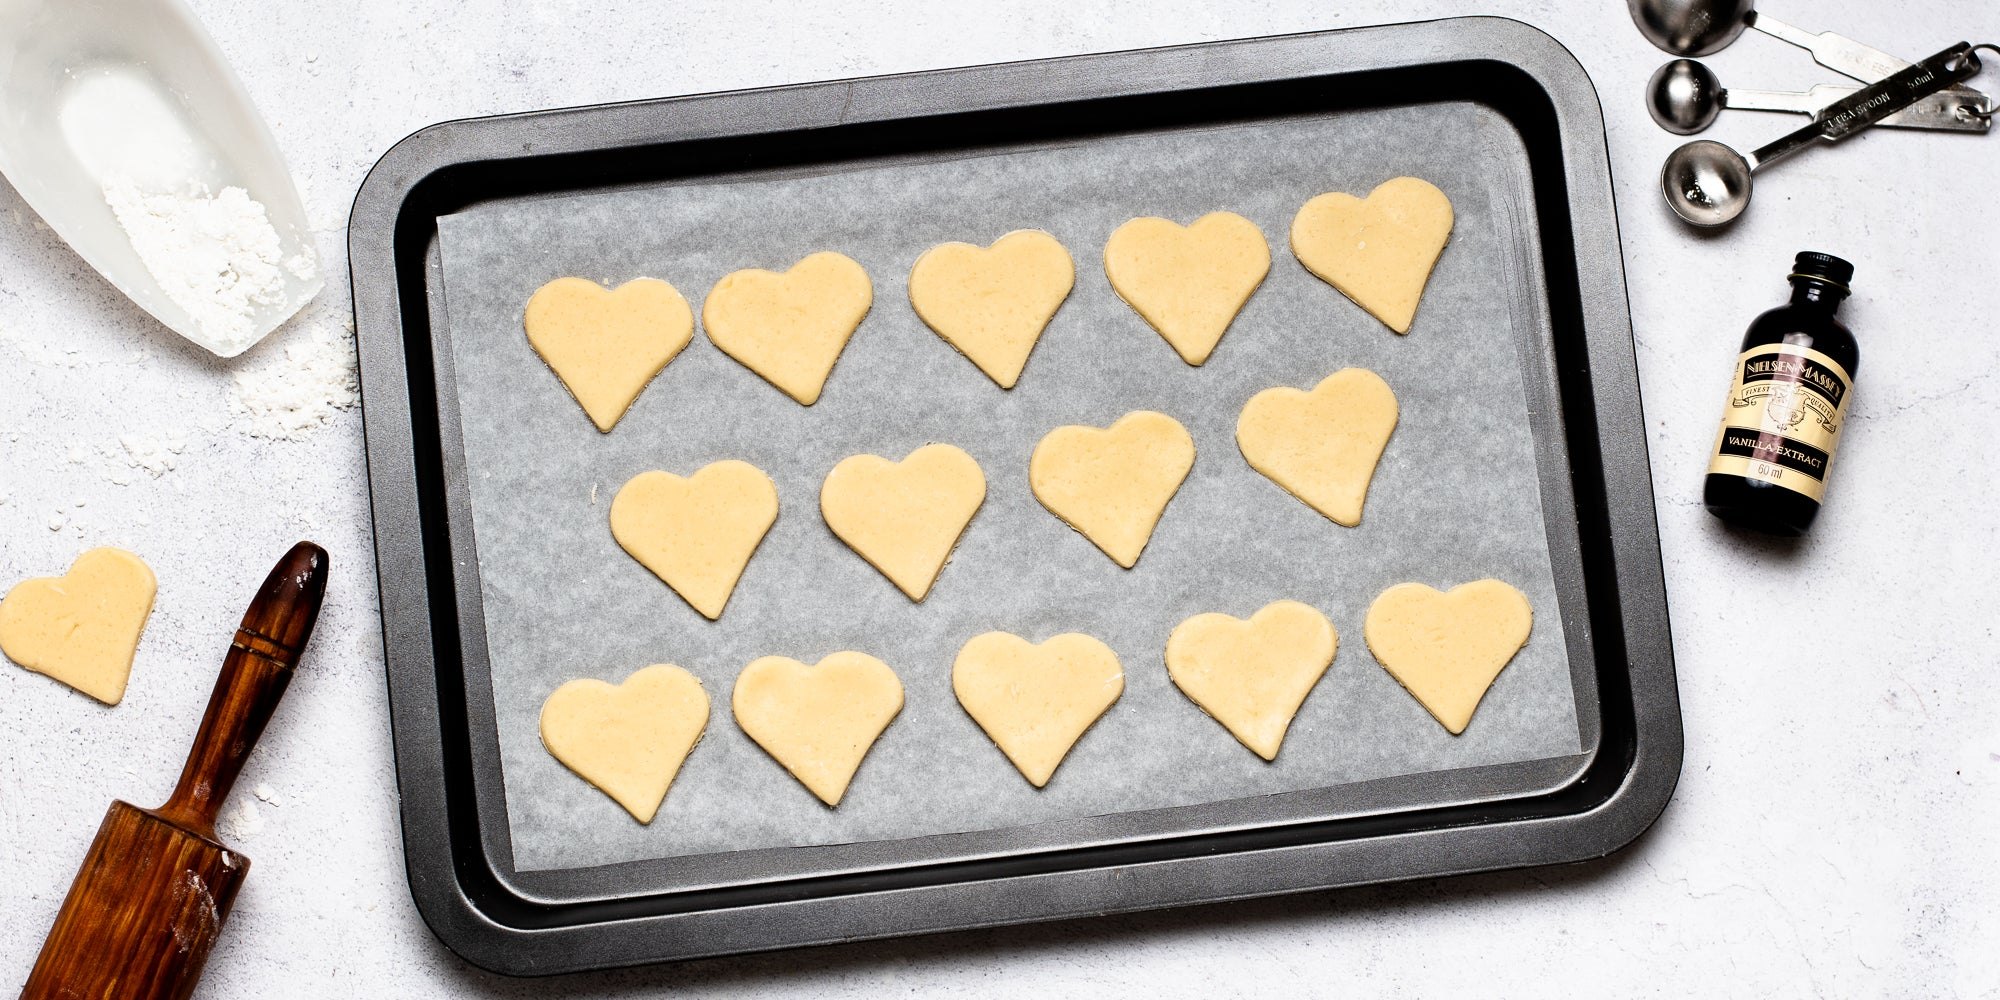 Top down view of a tray of heart shaped gluten free biscuits